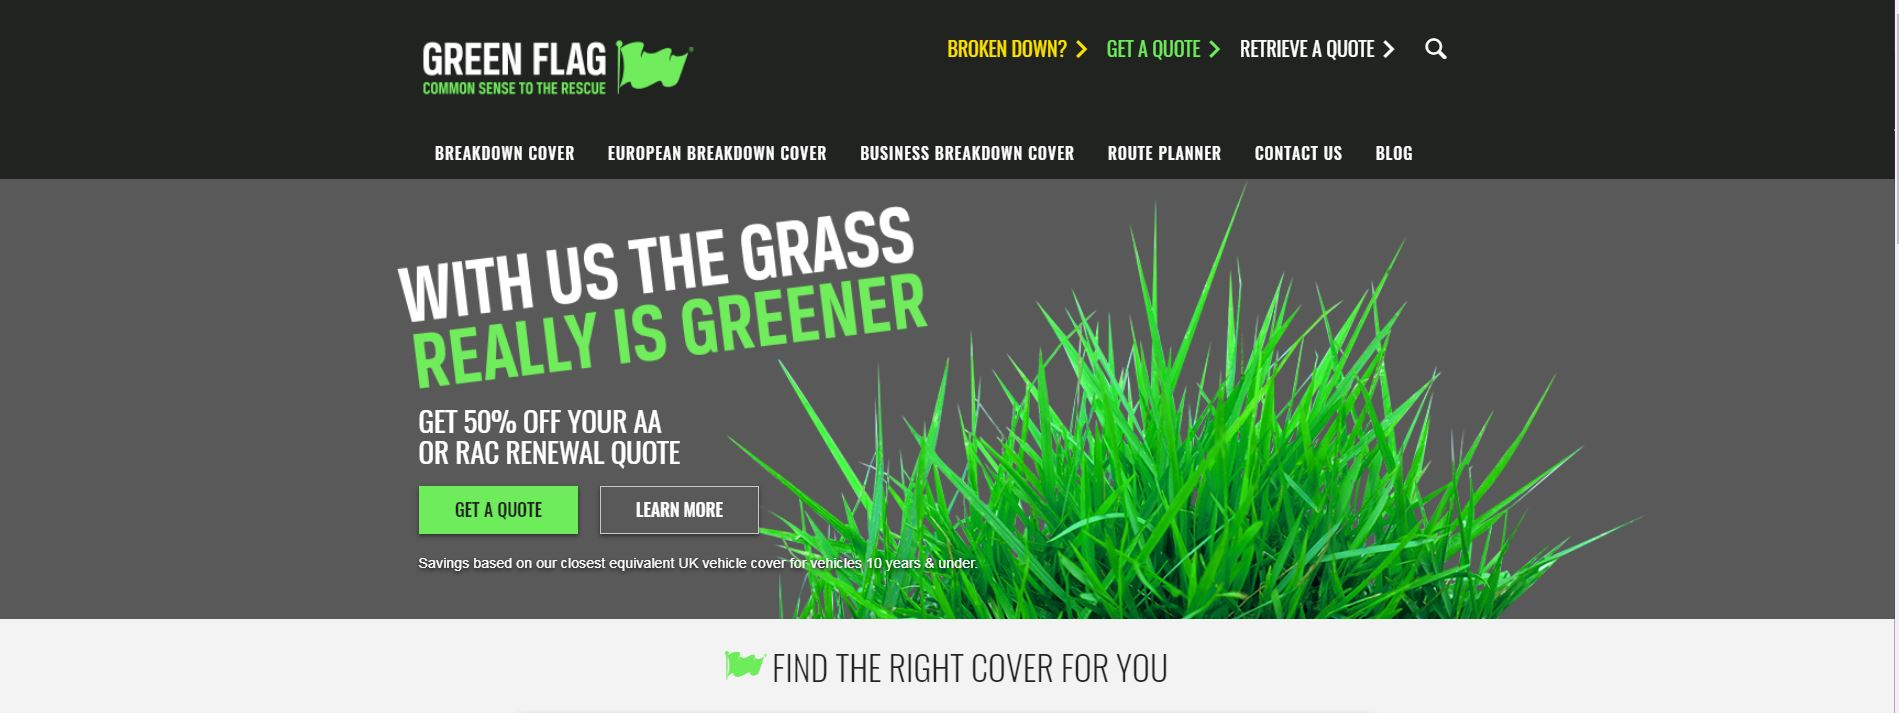 Green Flag's website home page